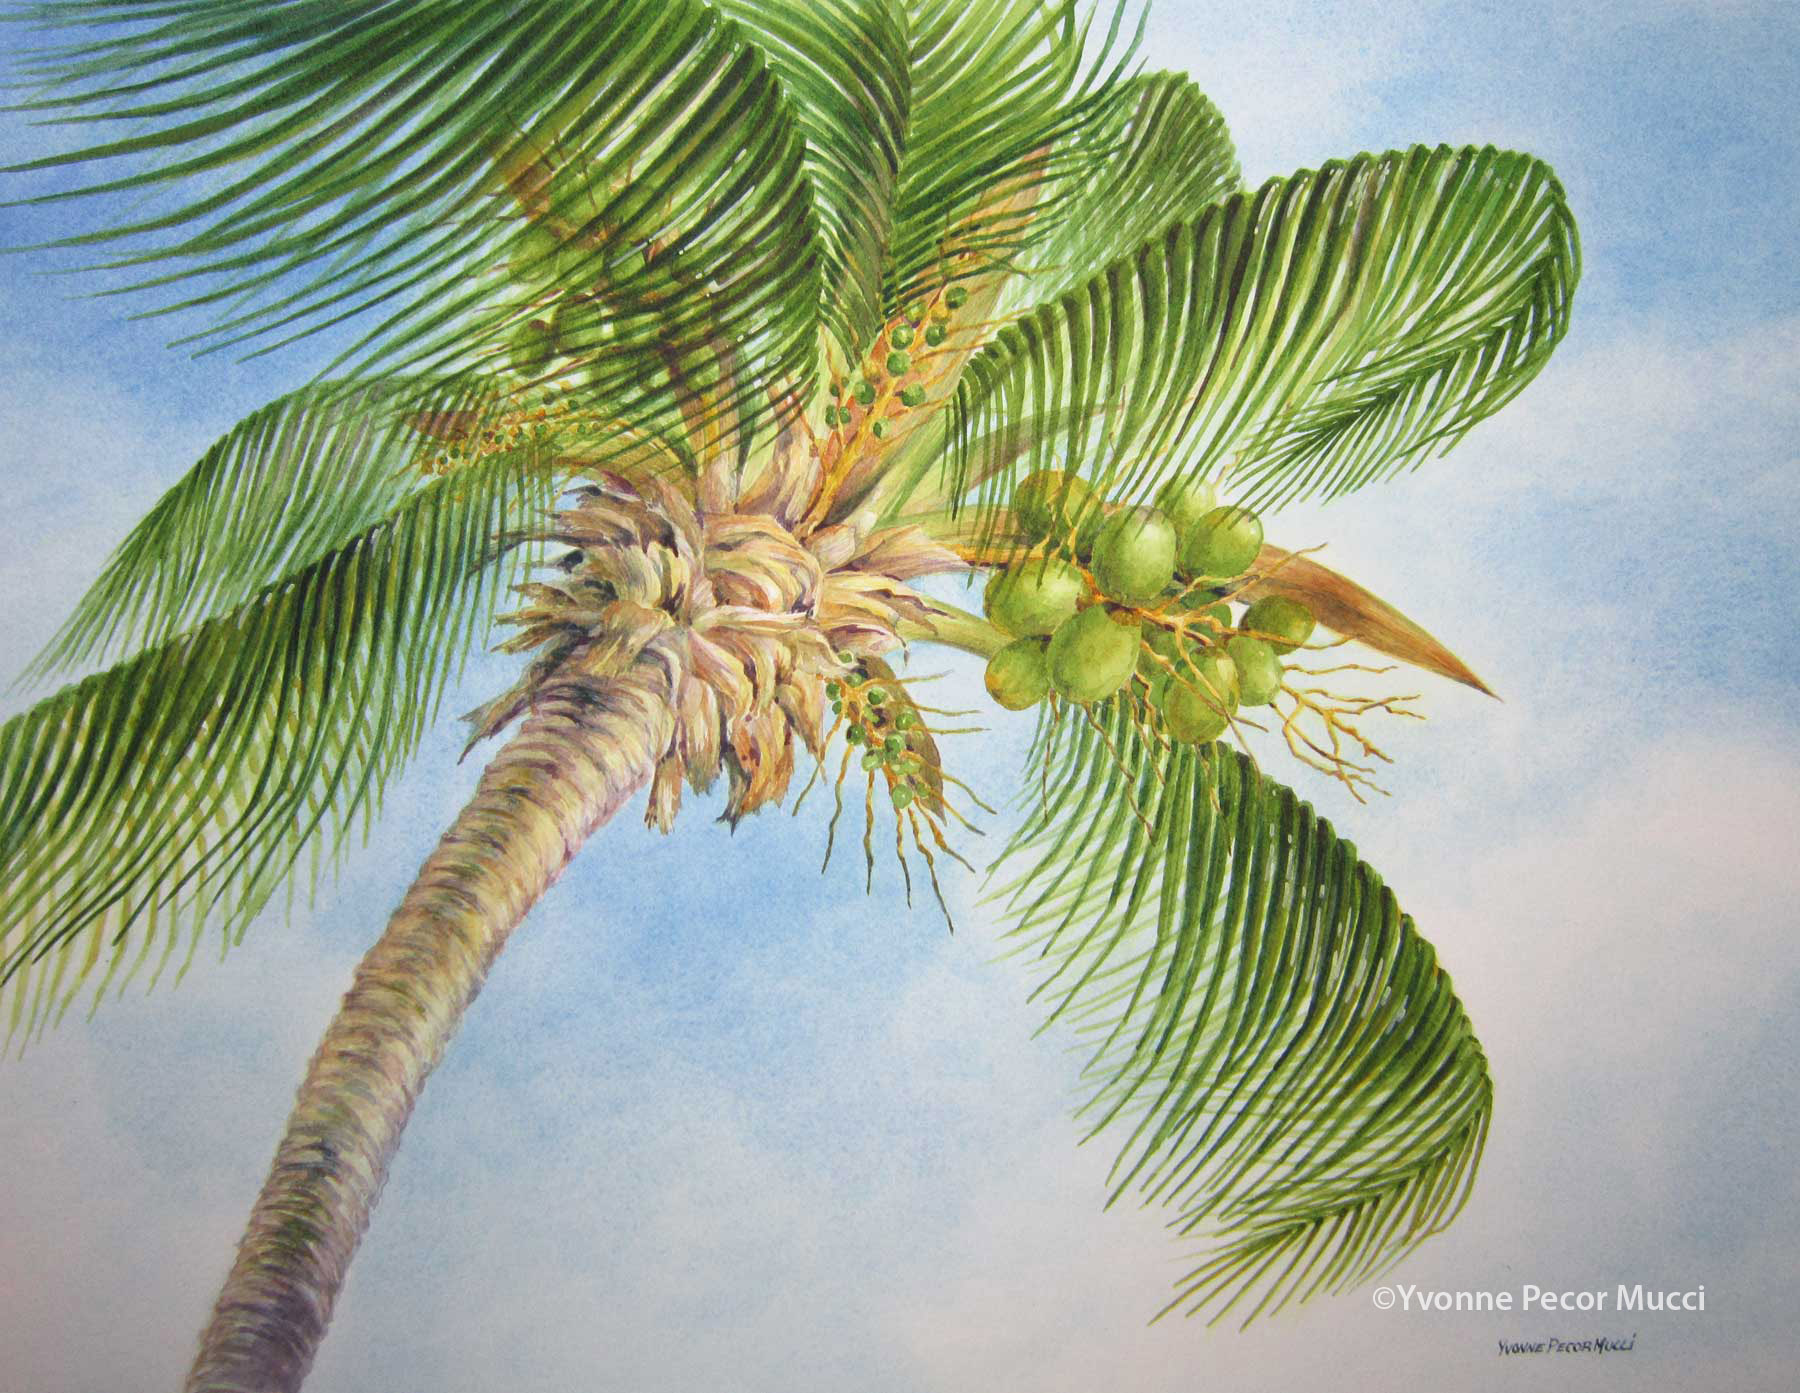 Drawn palm tree watercolor painting Yvonne Tree Mucci x Yvonne